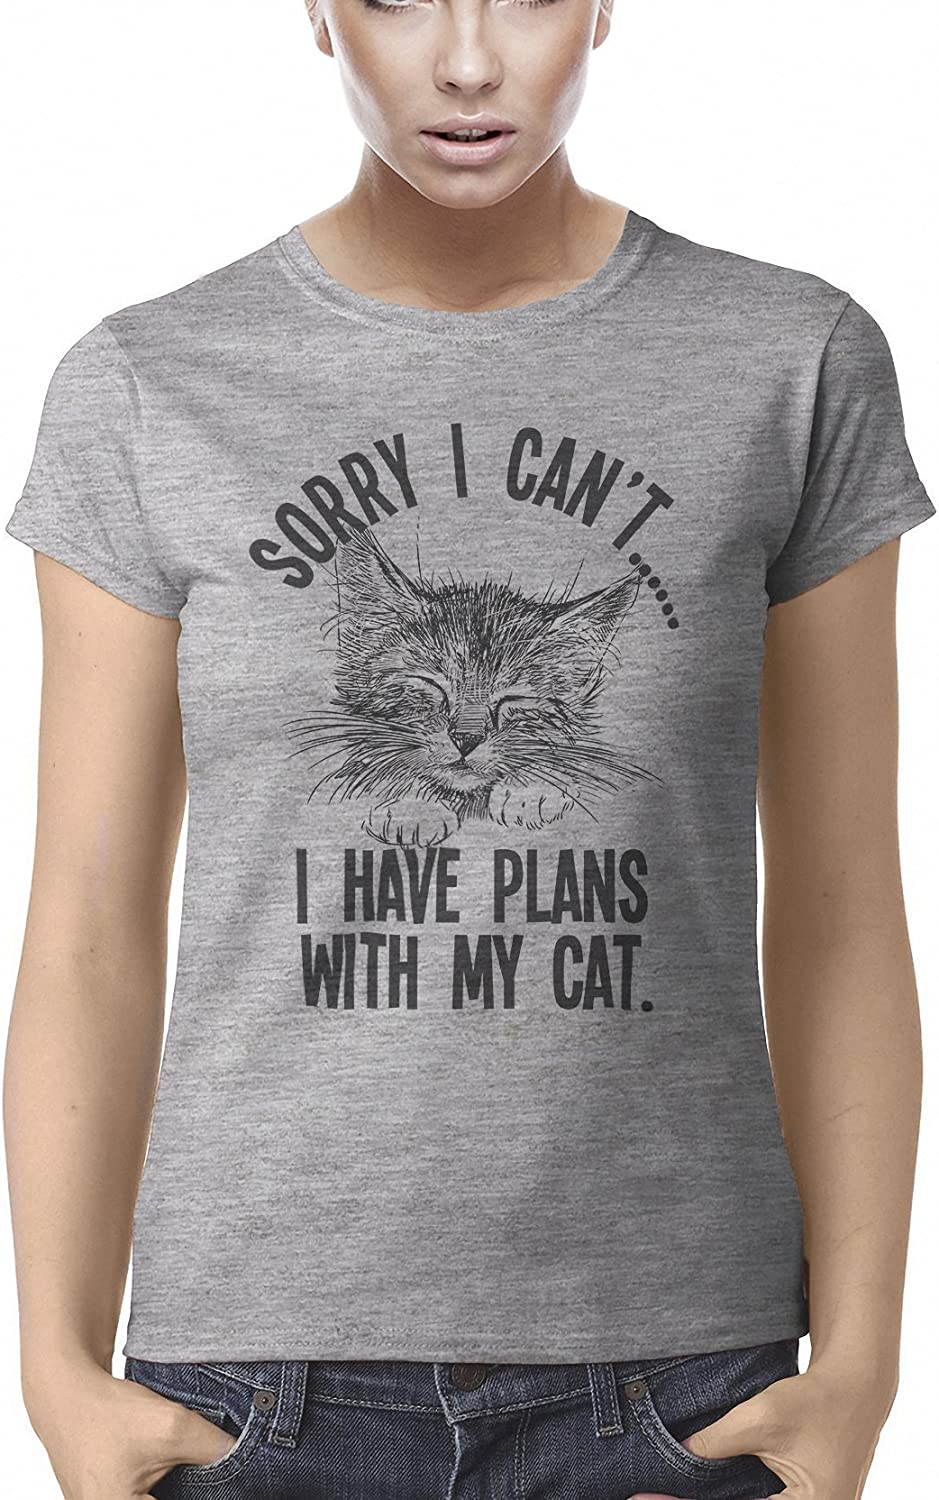 buzz shirts Sorry I Cant.I Have Plans with My Cat Womens Organic Cotton Pet T-Shirt